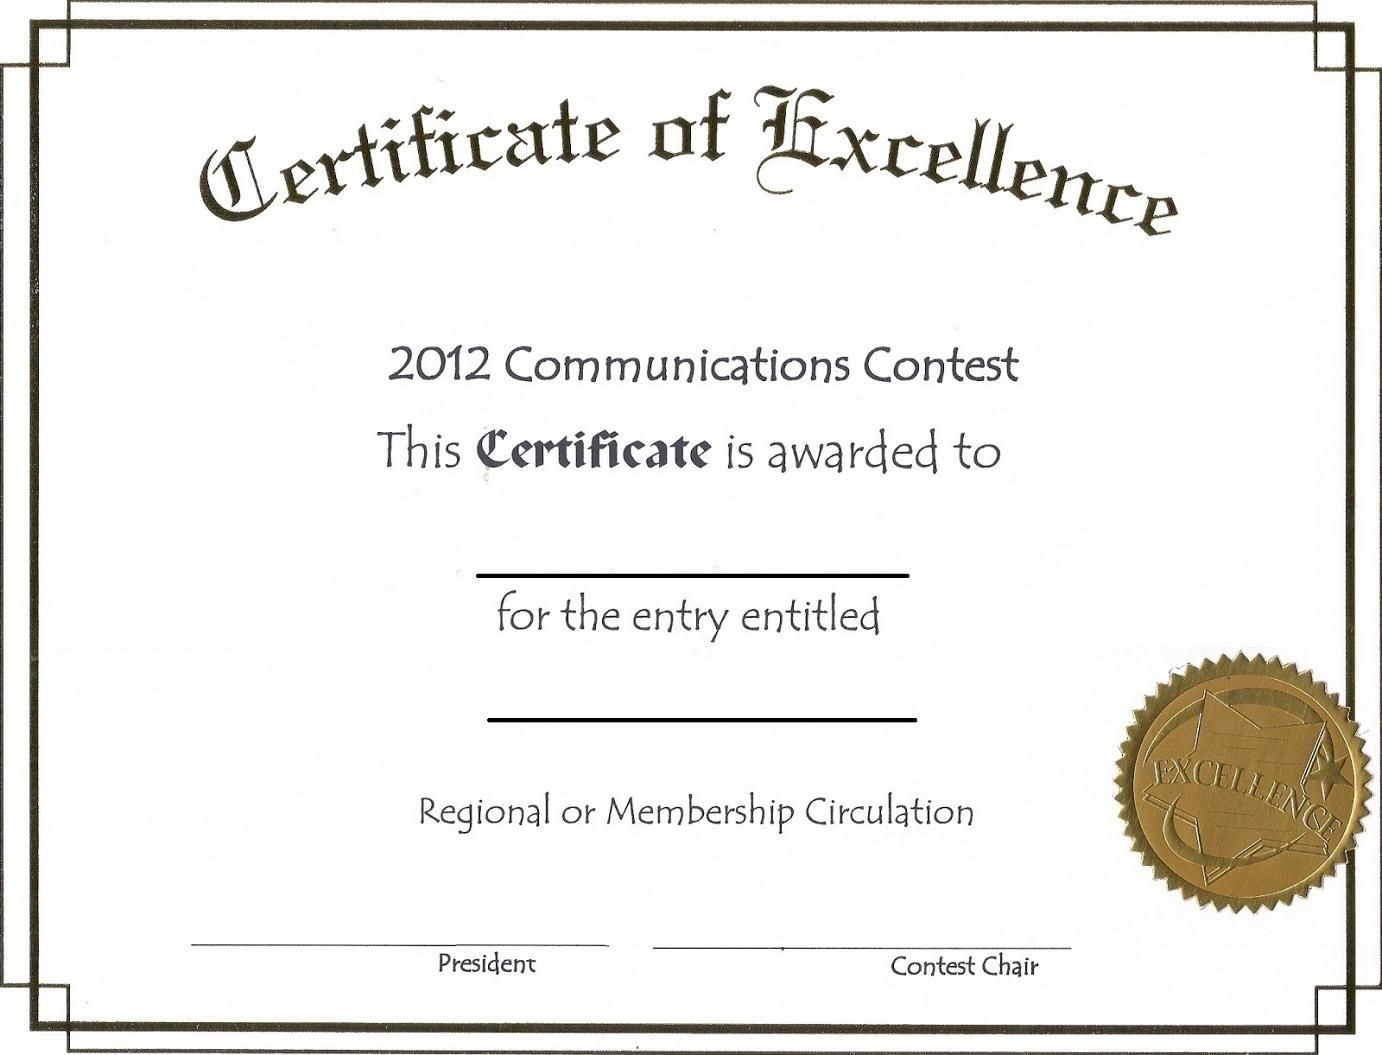 000 Dreaded Microsoft Word Certificate Template Image  2003 Award M Appreciation Of AuthenticityFull